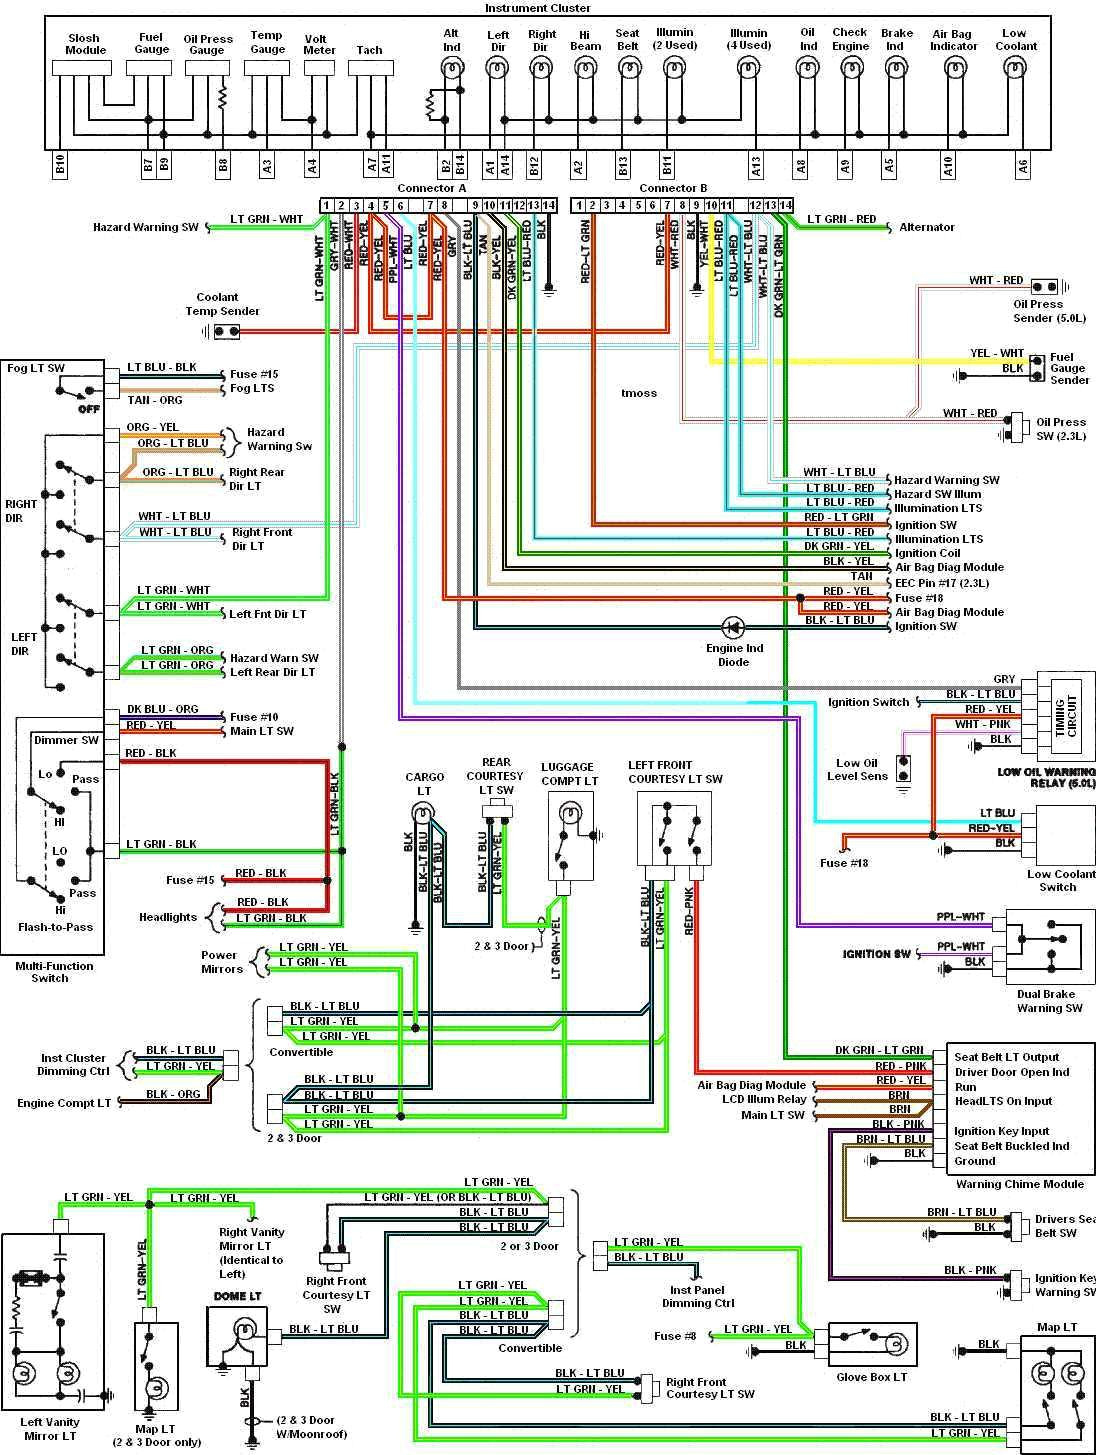 [SCHEMATICS_4FR]  XD_6855] F550 Fuse Box Diagram 2008 Download Diagram | 2008 F550 Wiring Diagram |  | Eumqu Capem Mohammedshrine Librar Wiring 101